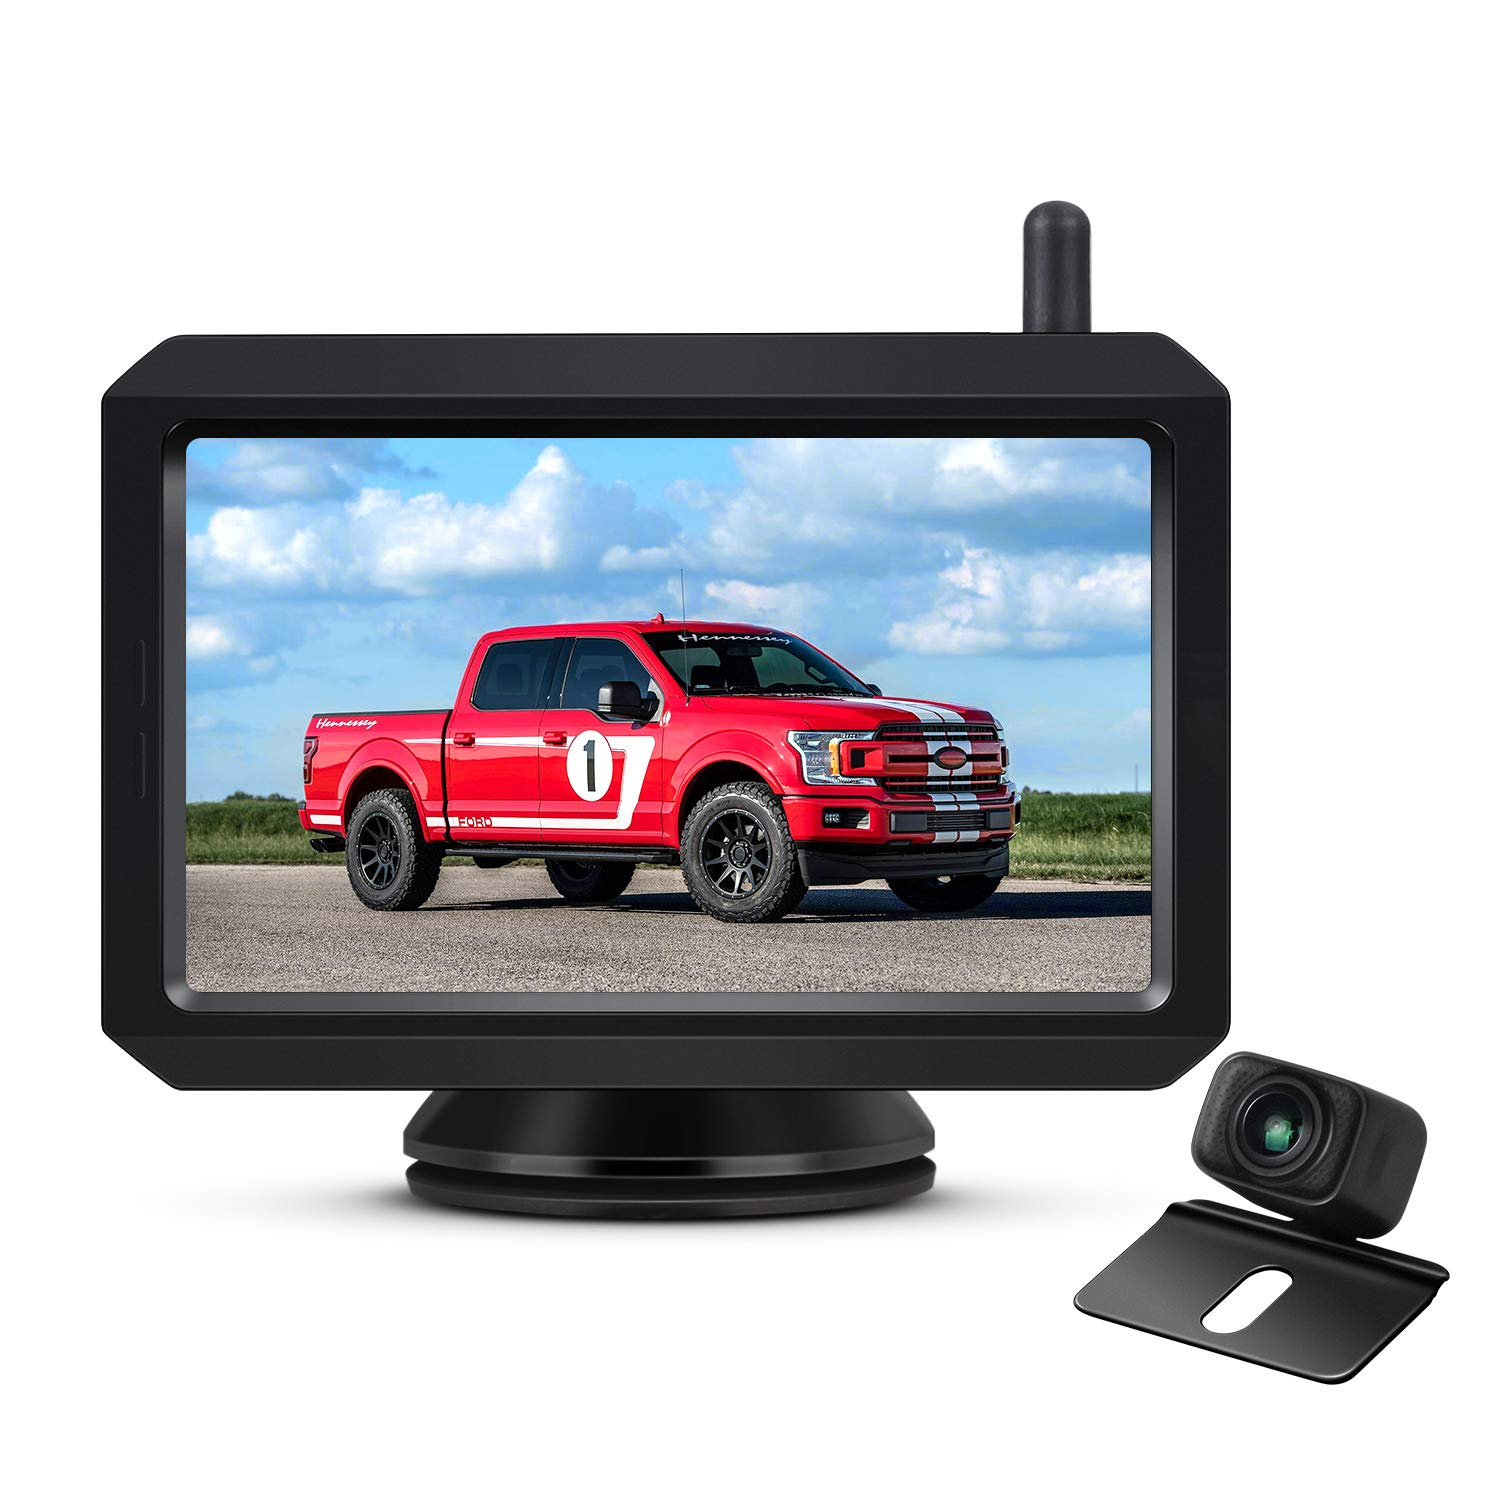 AUTO-VOX W7 Wireless Backup Camera Kit, 5 Inch Monitor with Stable Digital Signal Transmission from Rear View Camera. Suitable for Truck, Van, SUV, Camping Car by AUTO-VOX